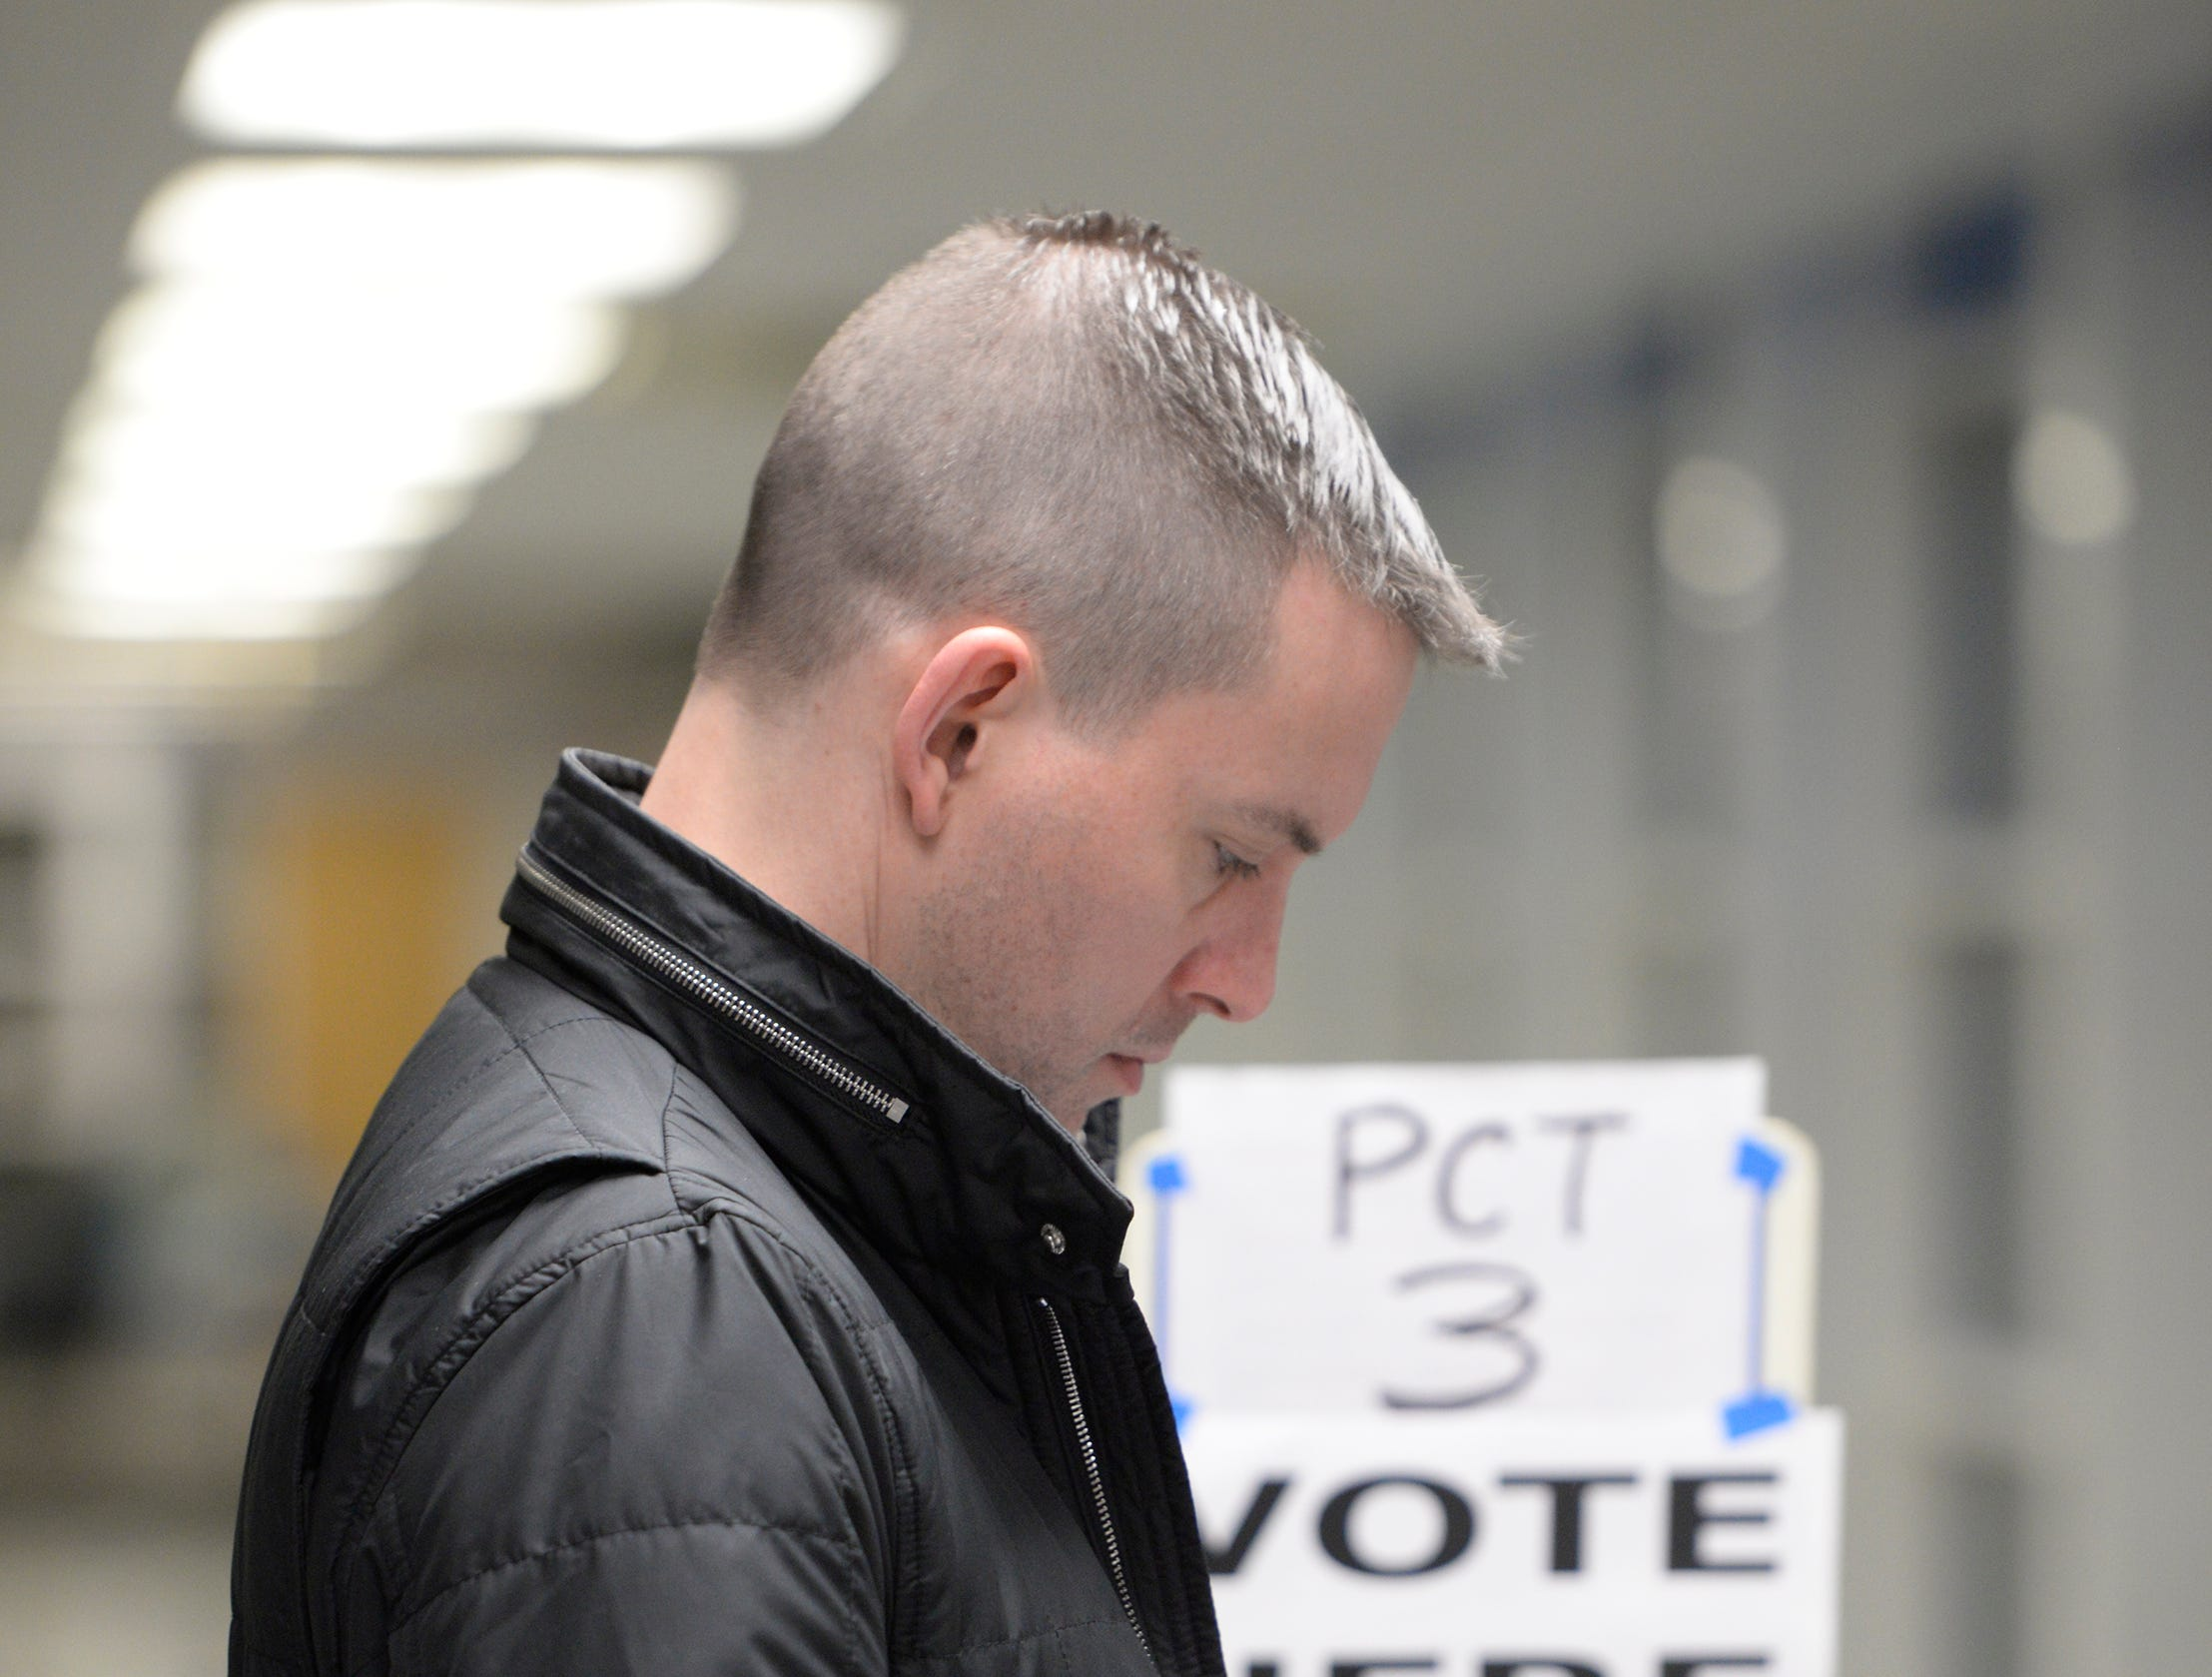 Chris Jacobson checks his phone while waiting in line to vote at Derby Middle School in Birmingham early on election day Nov. 6, 2018.